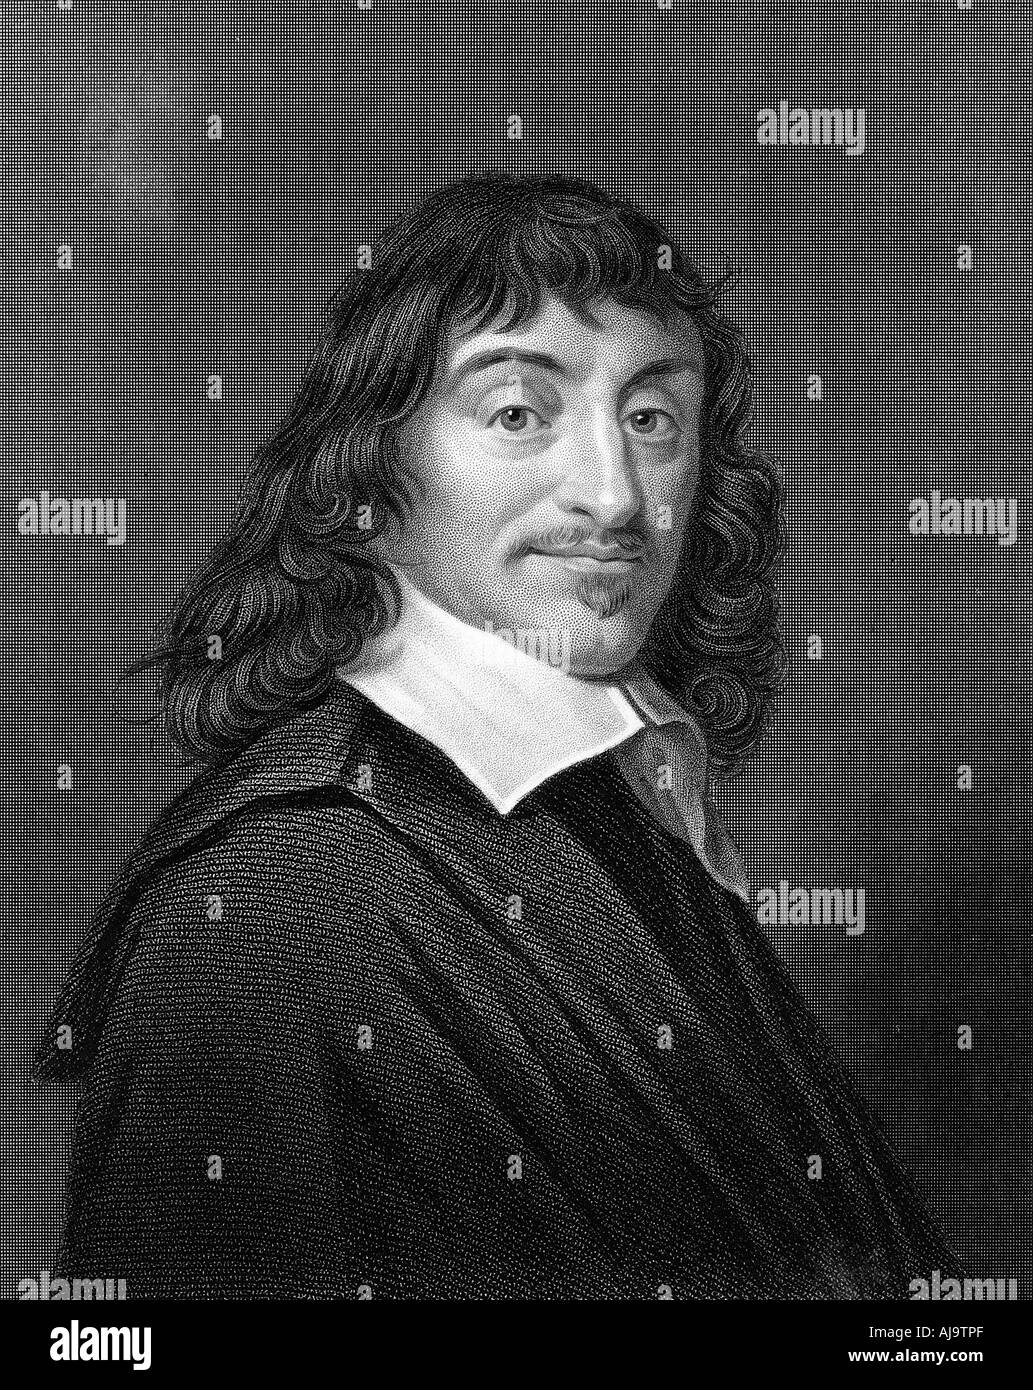 Rene Descartes, French philosopher and mathematician, 1835. Artist: Unknown Stock Photo